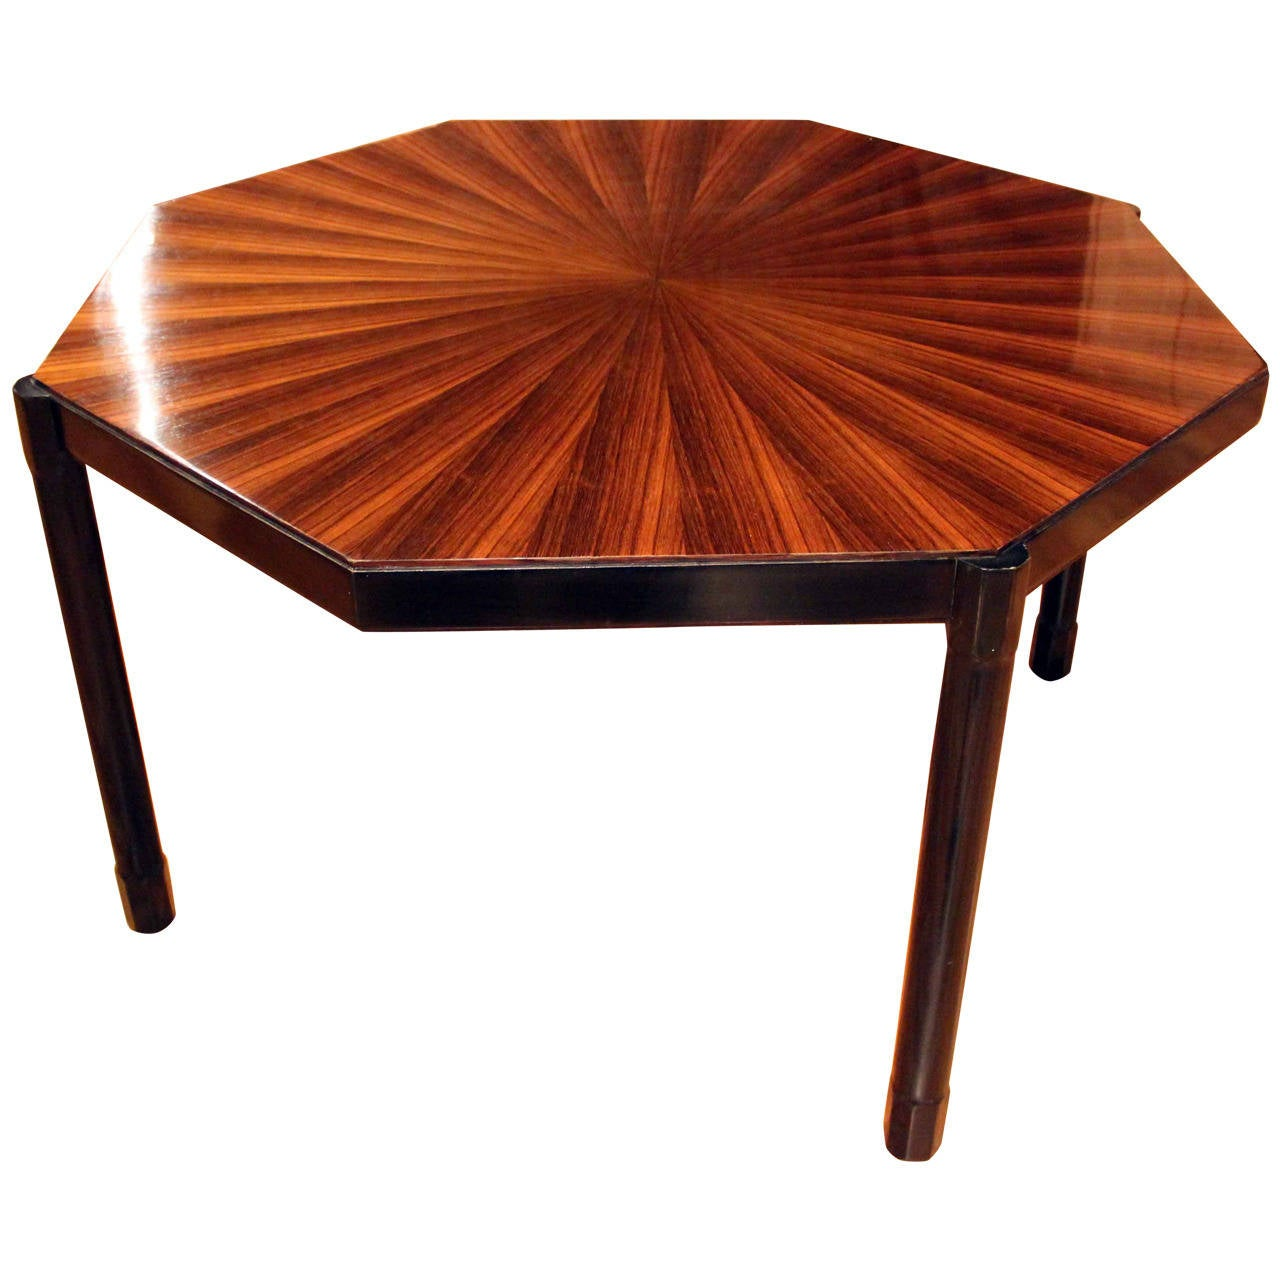 Center Table Wood : Sorry, this item from Randall Tysinger Antiques is not available.